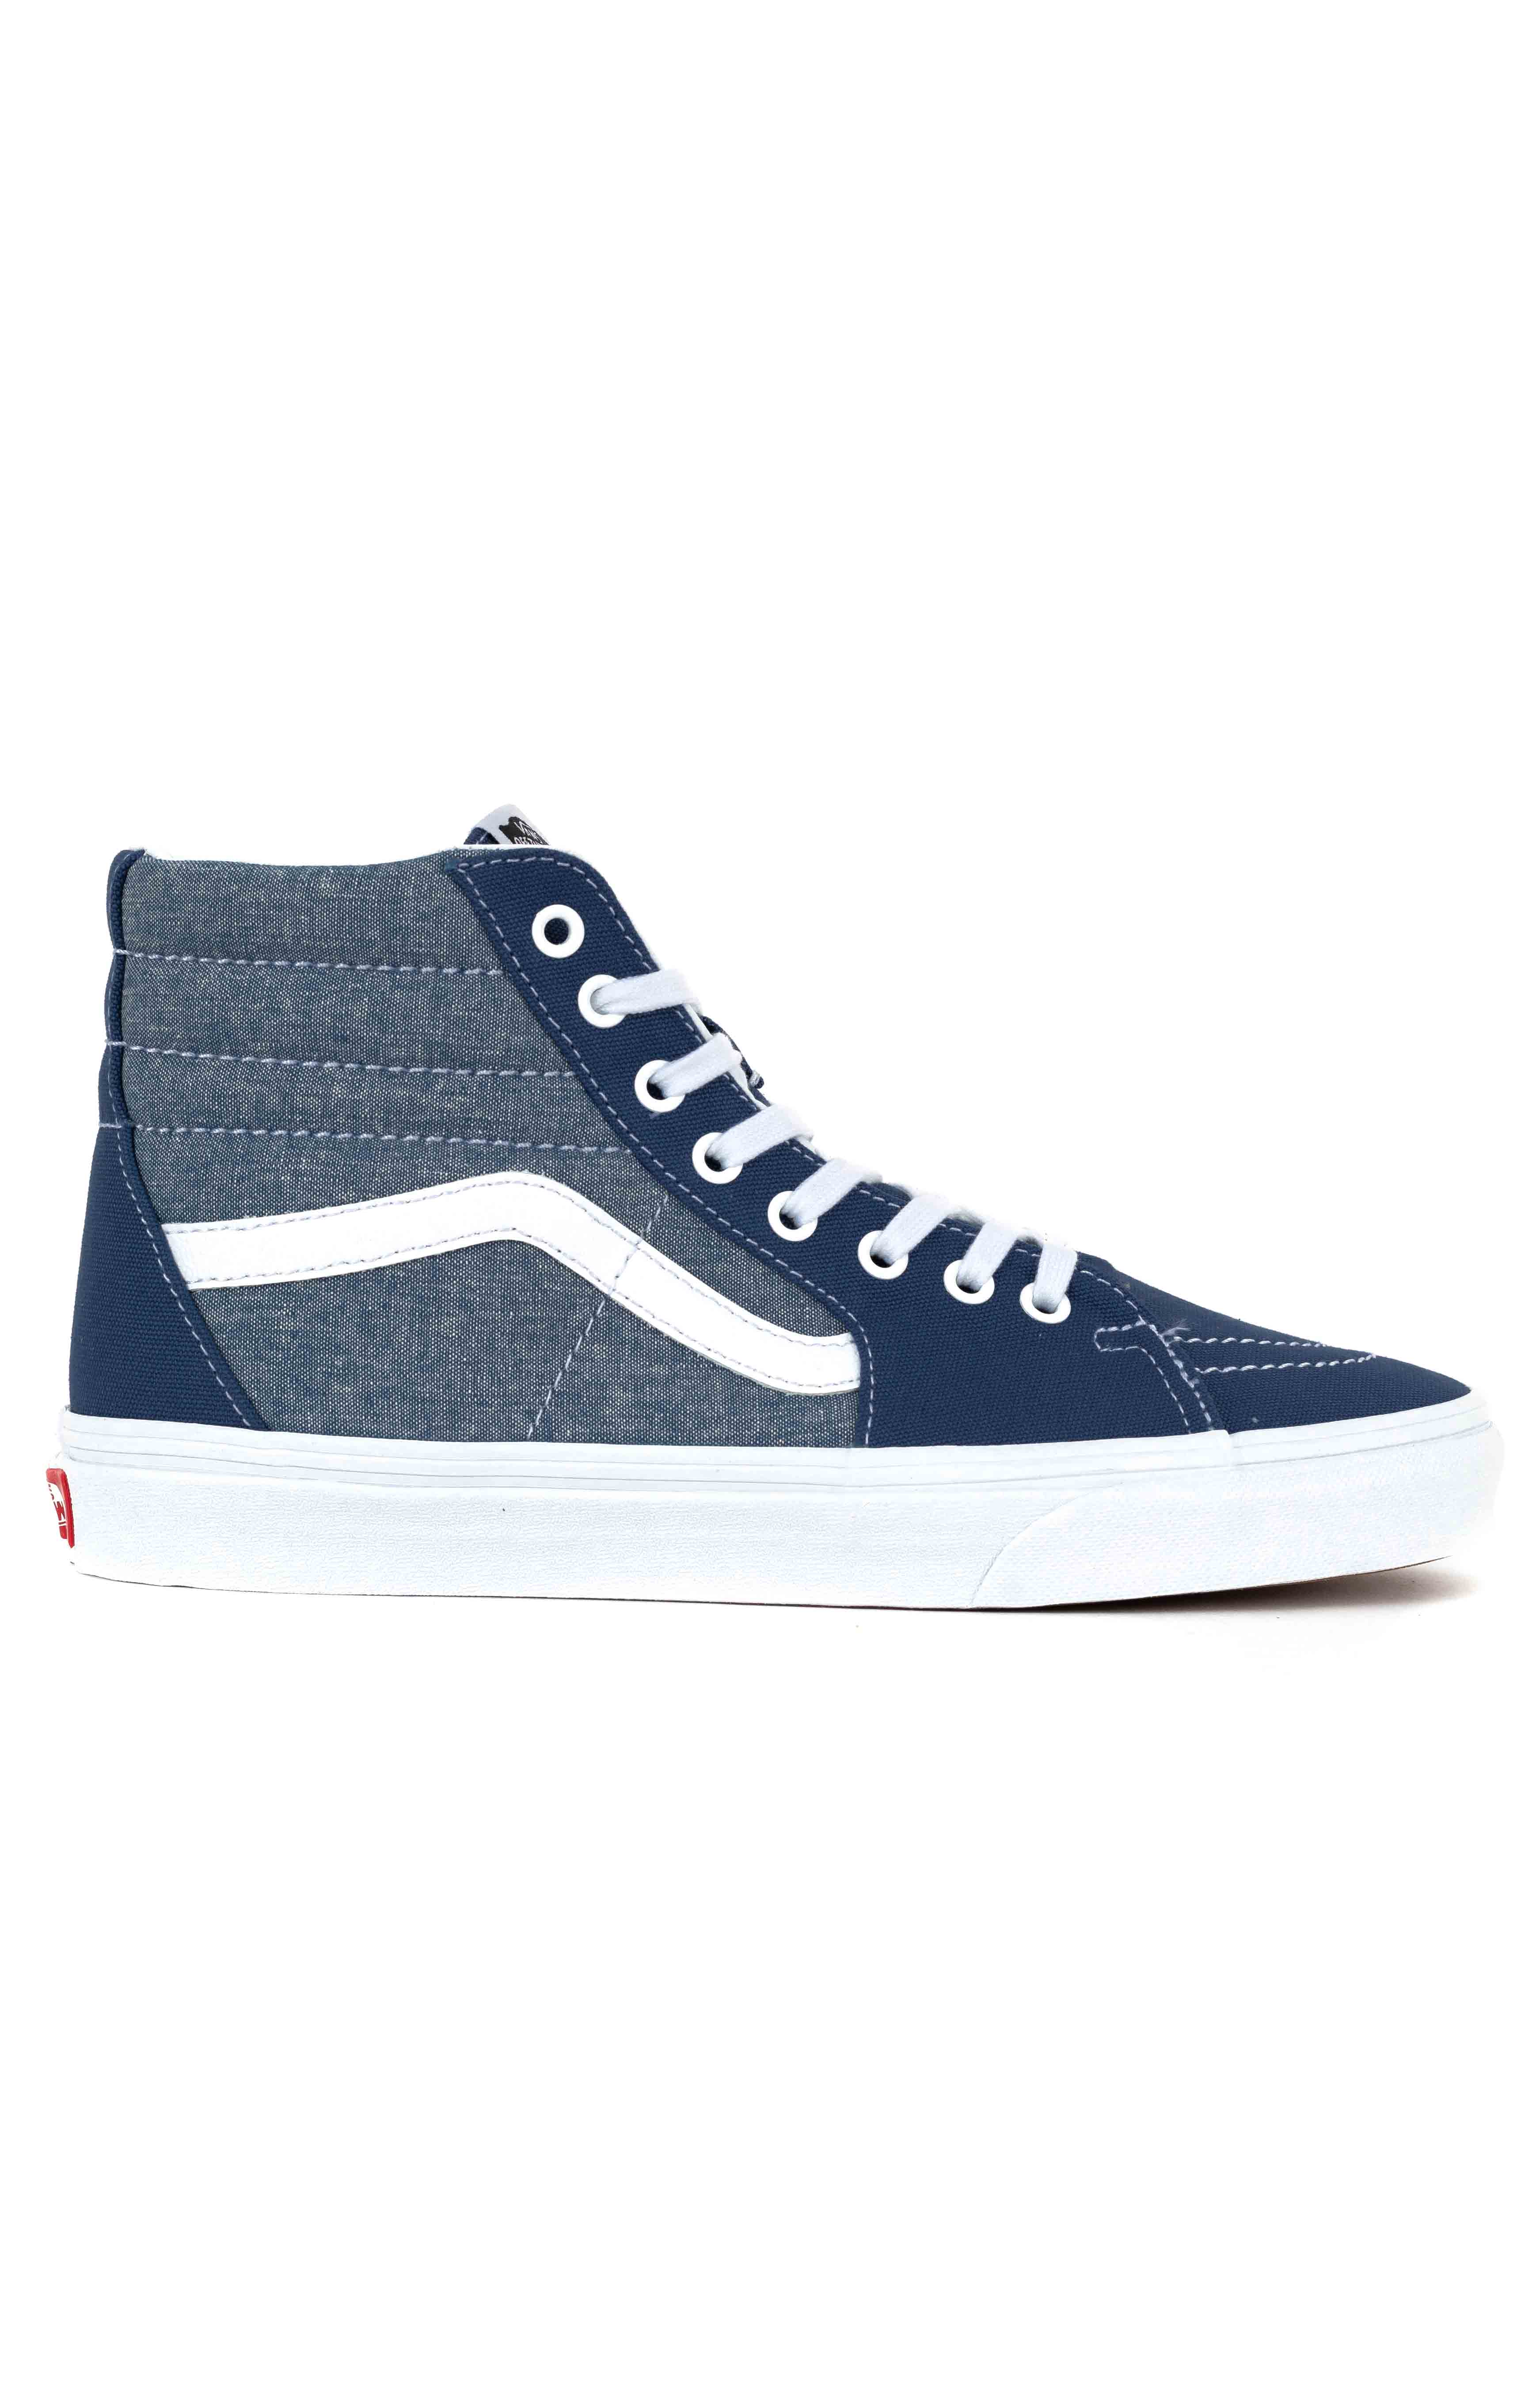 (8GEVIO) Chambray Sk8-Hi Shoe - Canvas True Navy